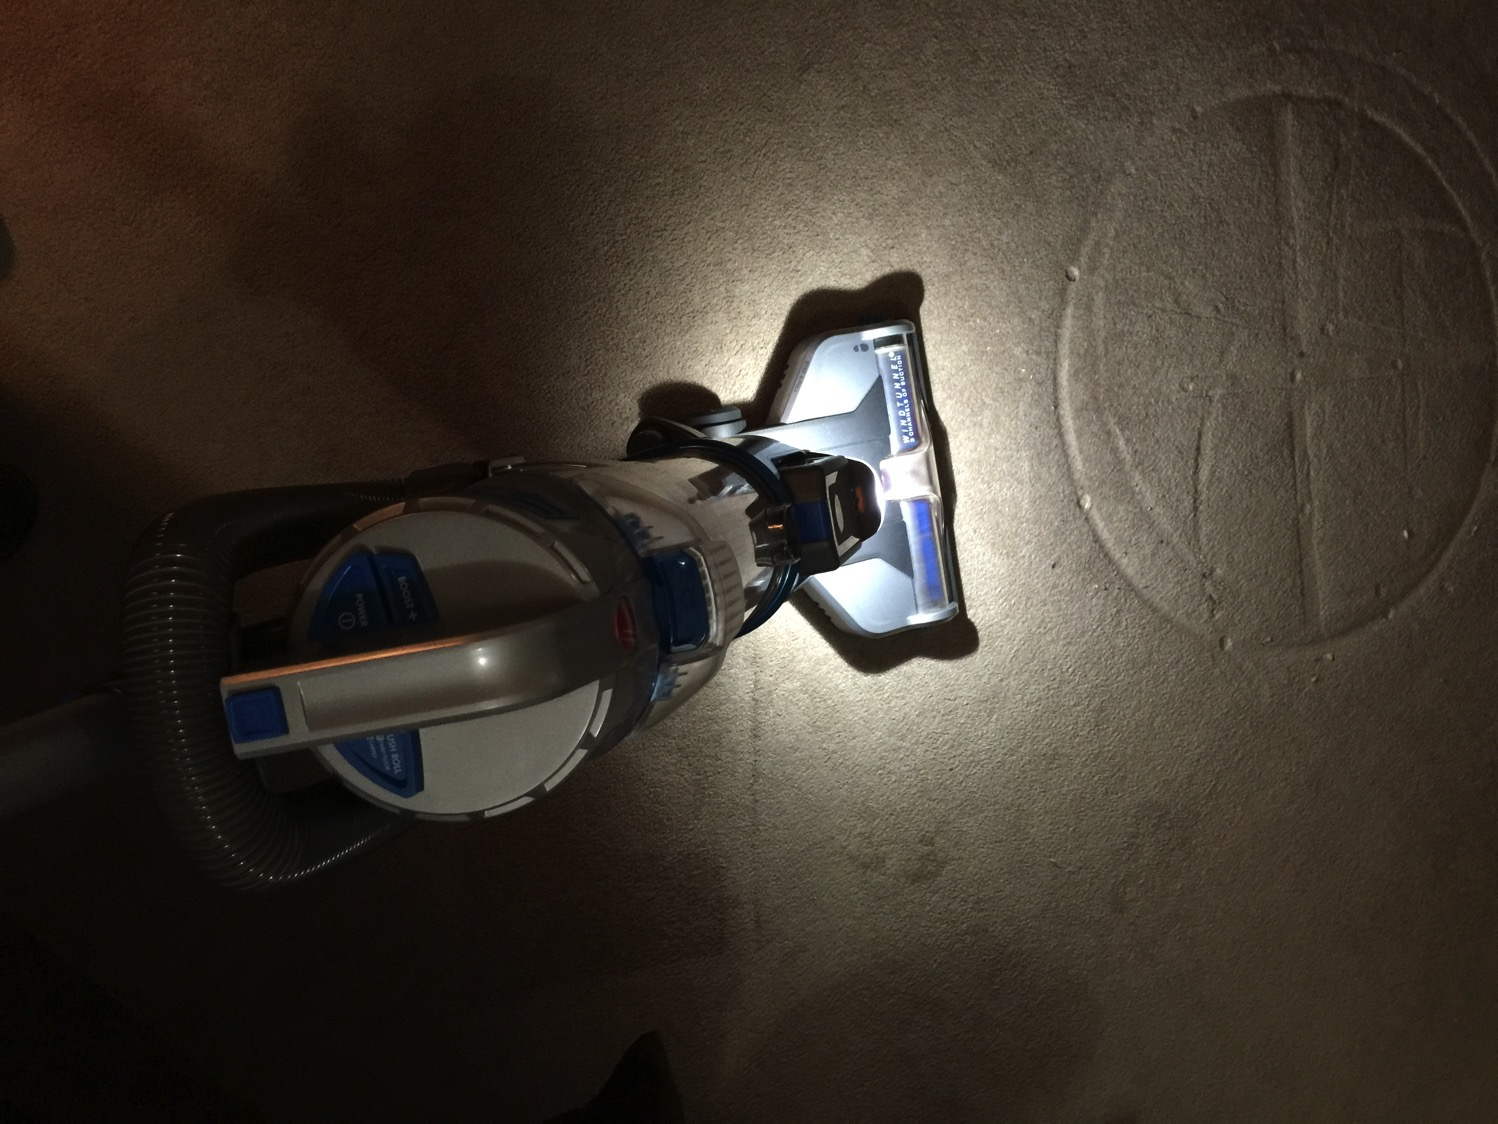 hoover cordless vacuum review | why go cordless